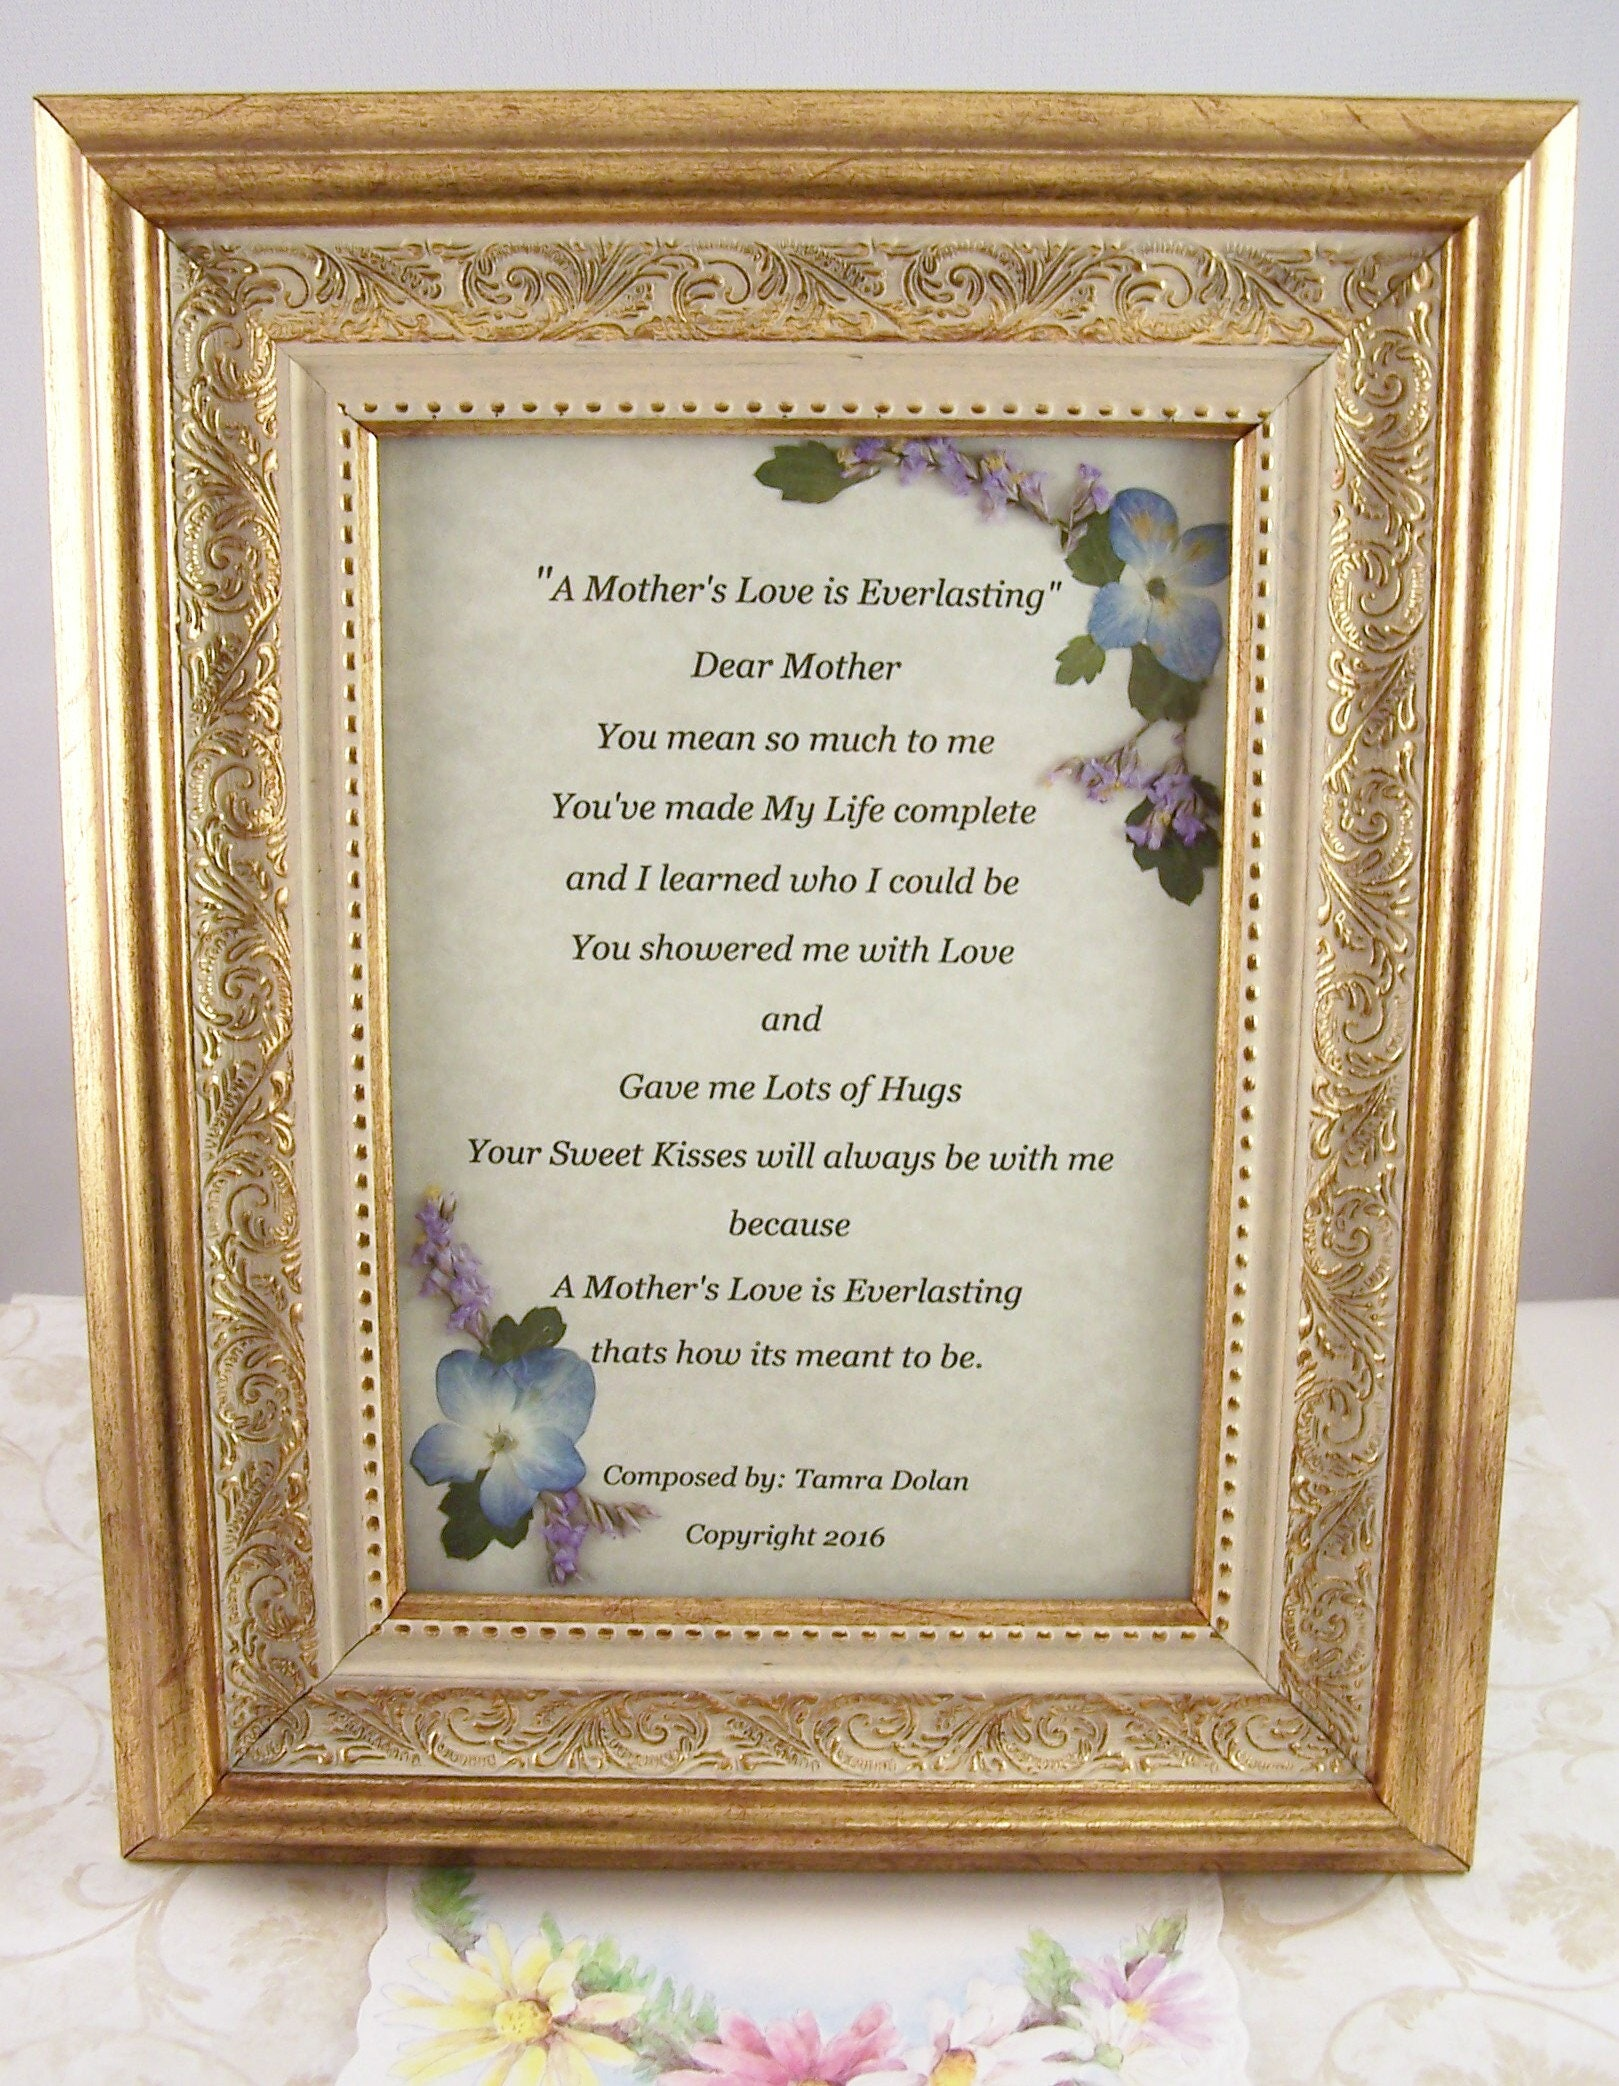 gifts for mom mother poems for mom mother personalized gifts mom